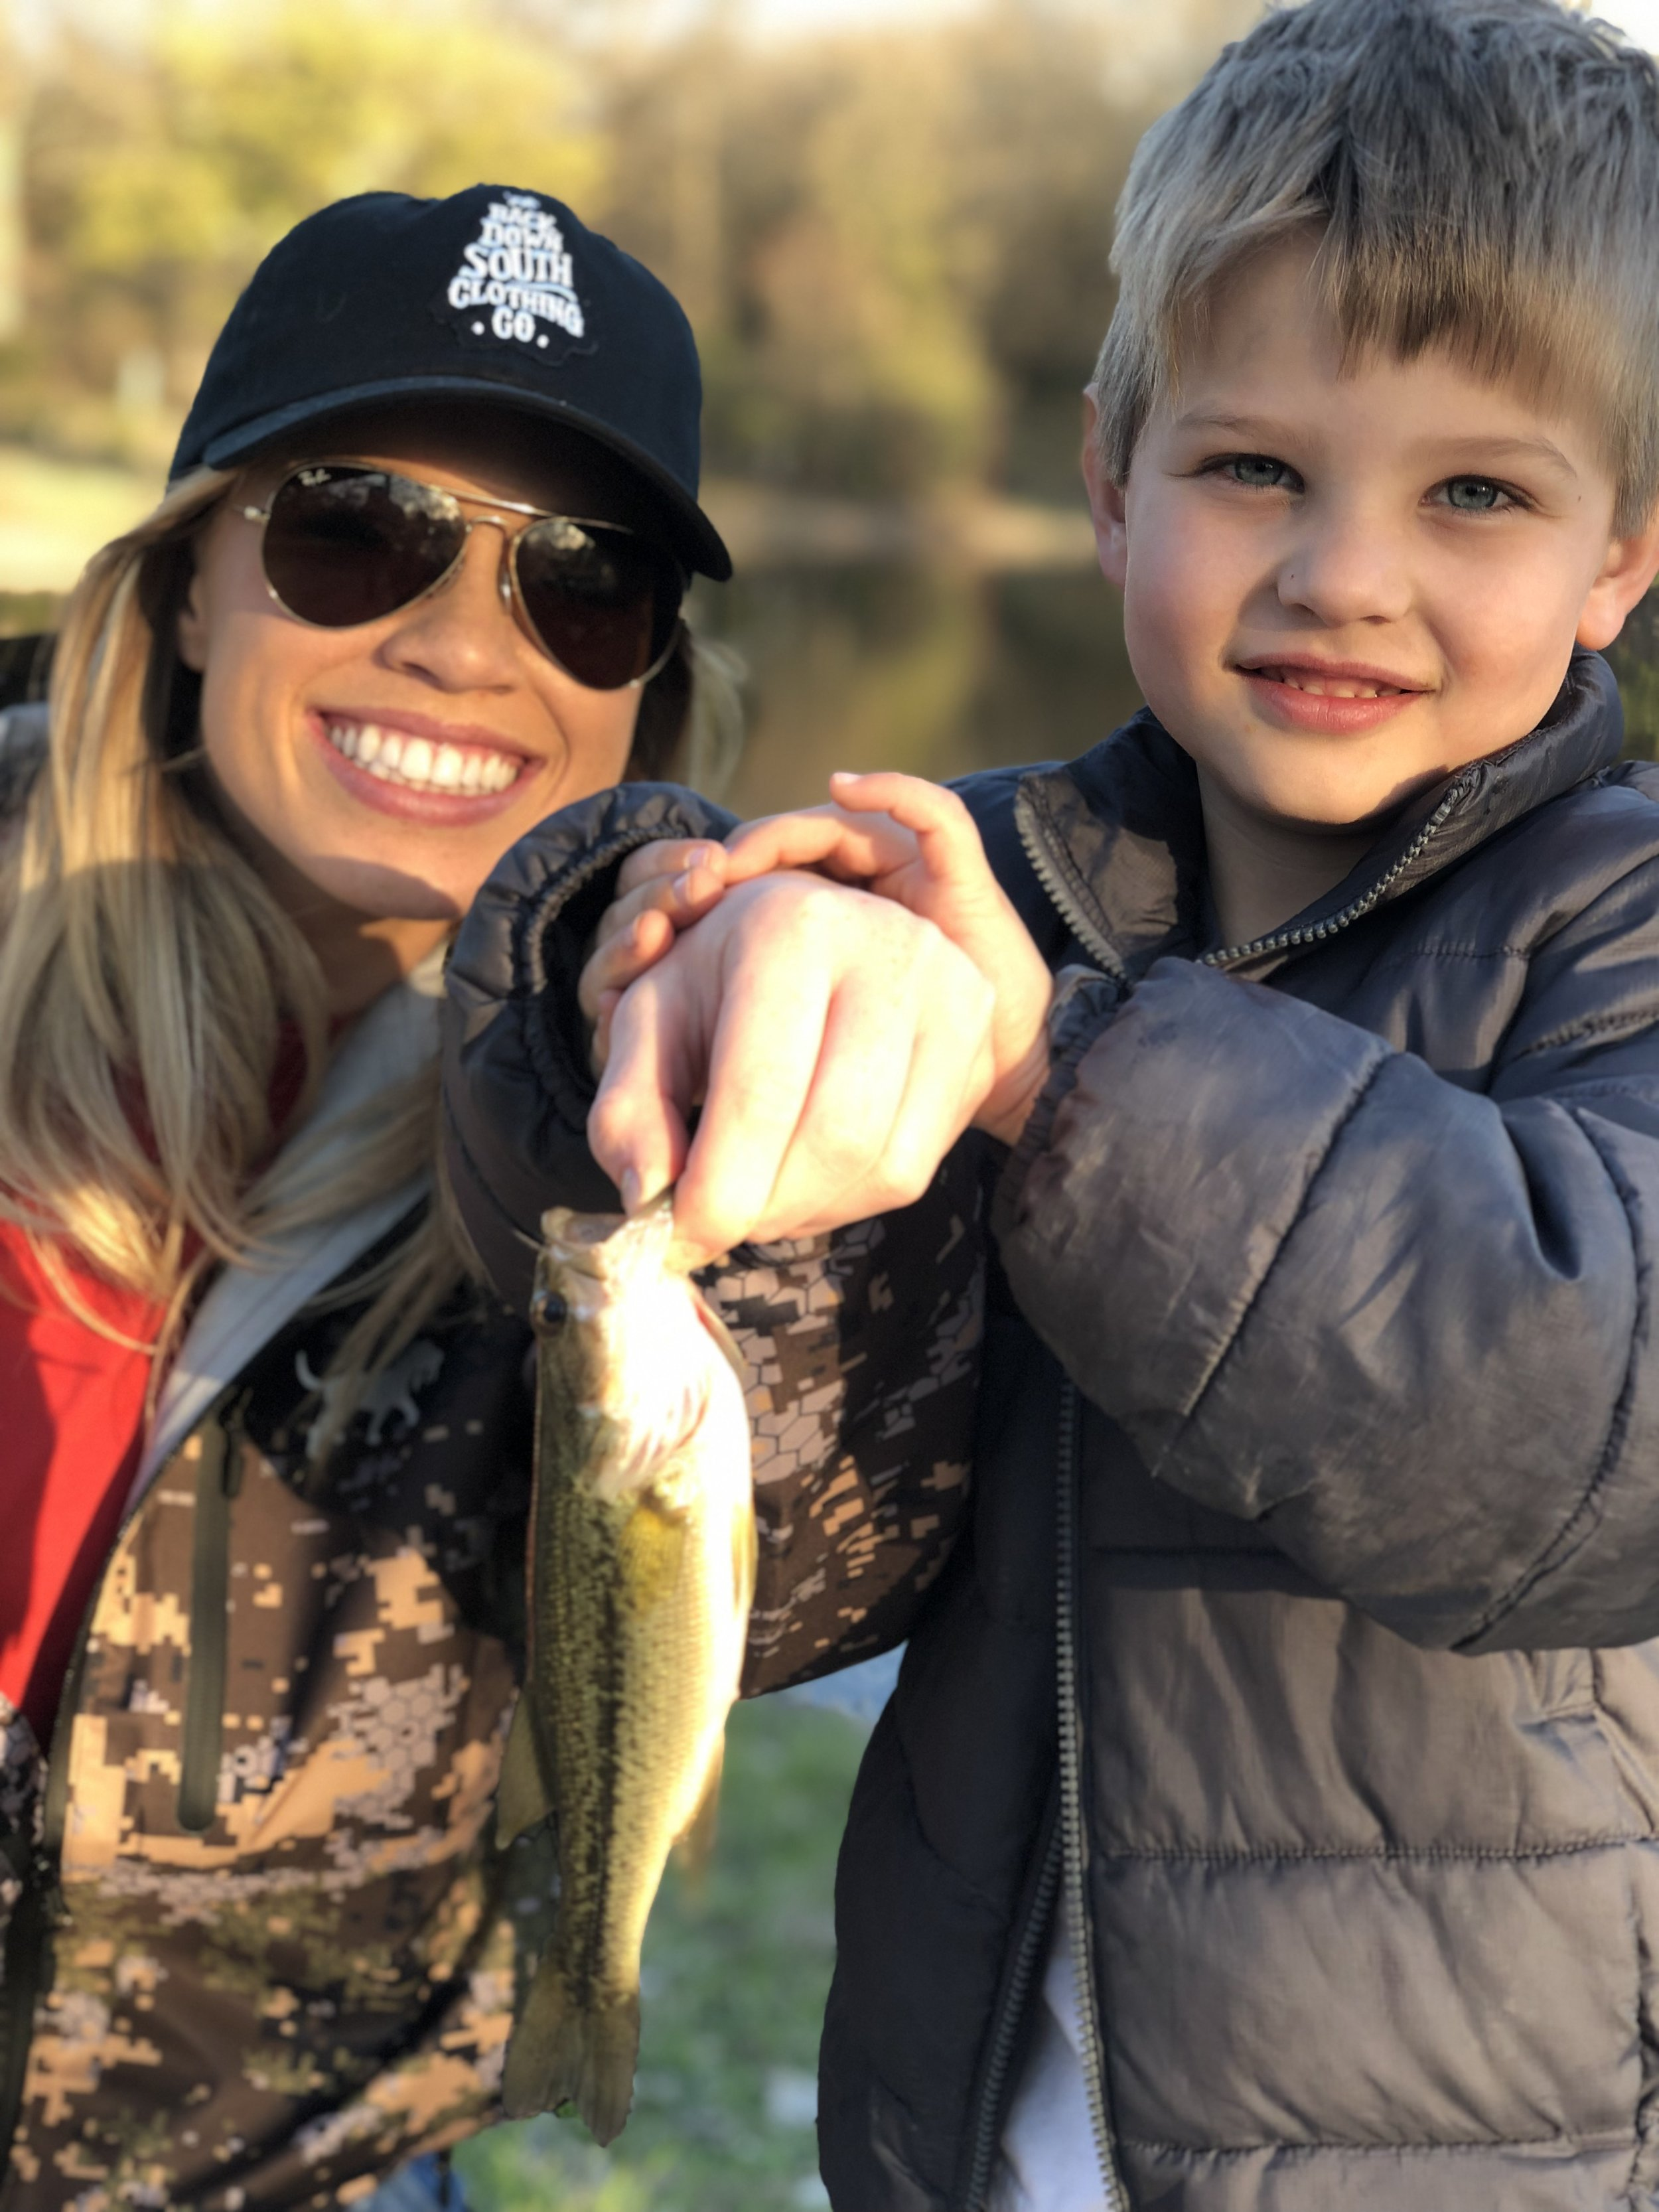 Kendall Jones with cousin fishing